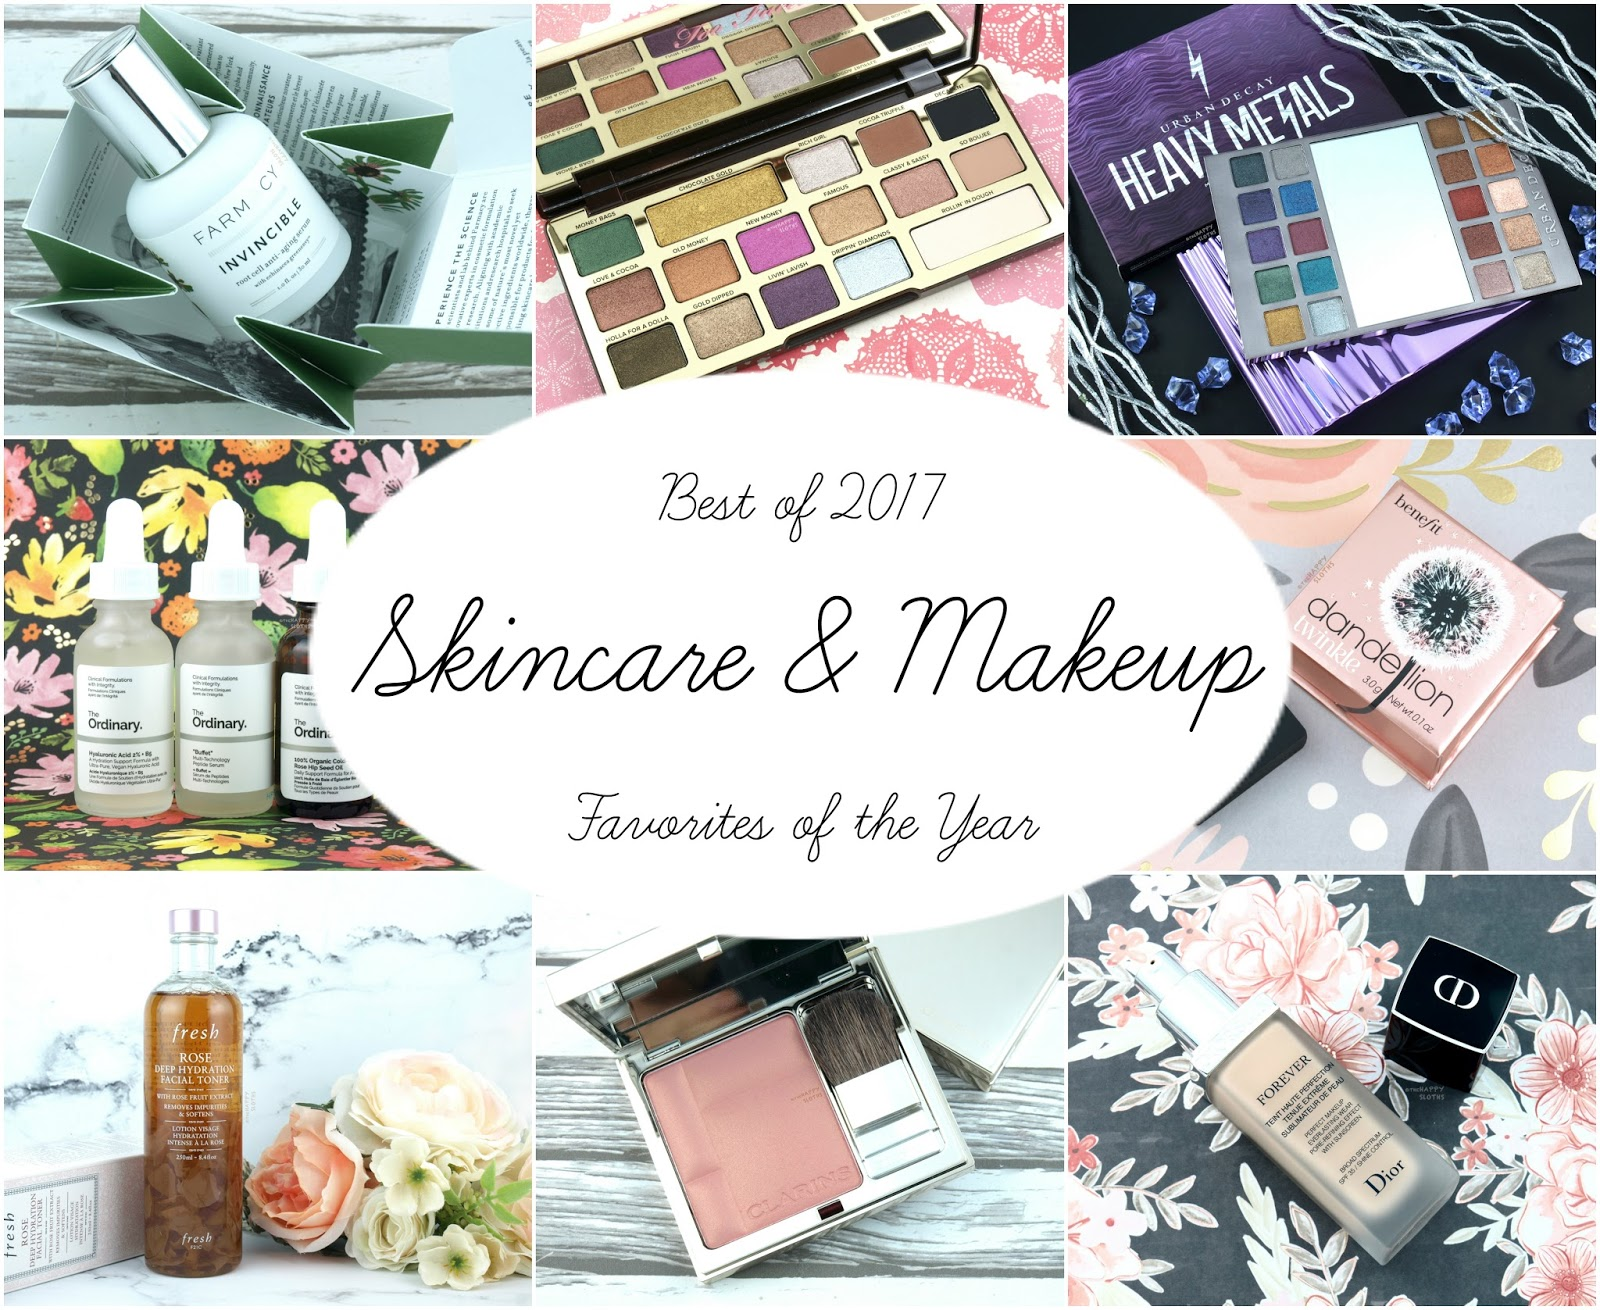 Best of 2017 | Skincare & Makeup Favorites of the Year